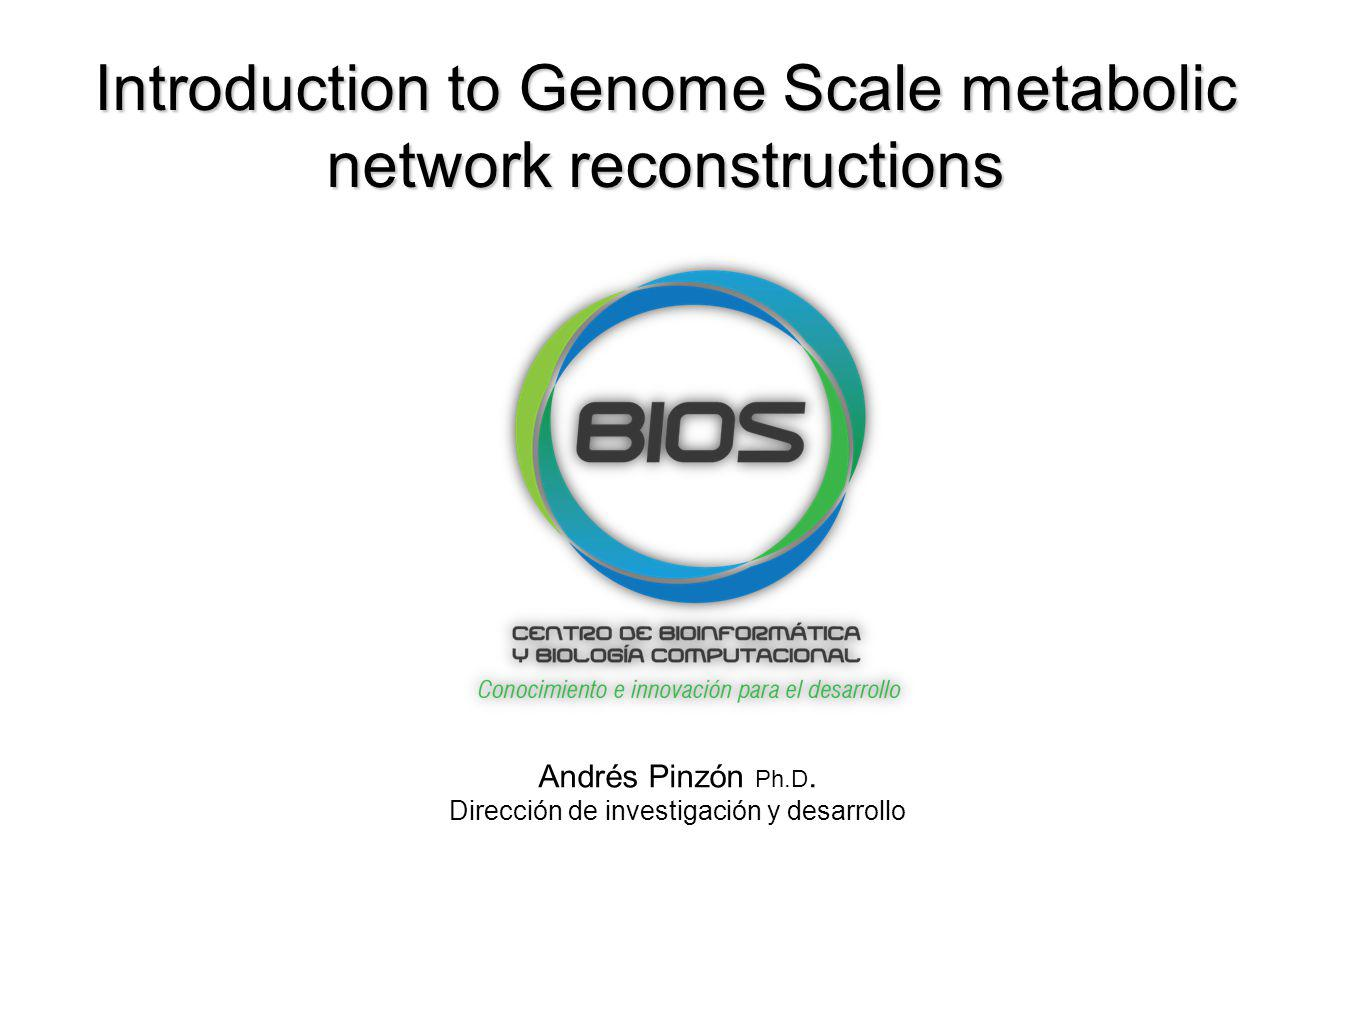 Metagenome Scale Metabolic Analysis Global Metabolic Potential GMP is defined as the sum of weights assigned to a set of metabolic reactions, potentially active in a given environment, based on evidence from multiple biological sources.